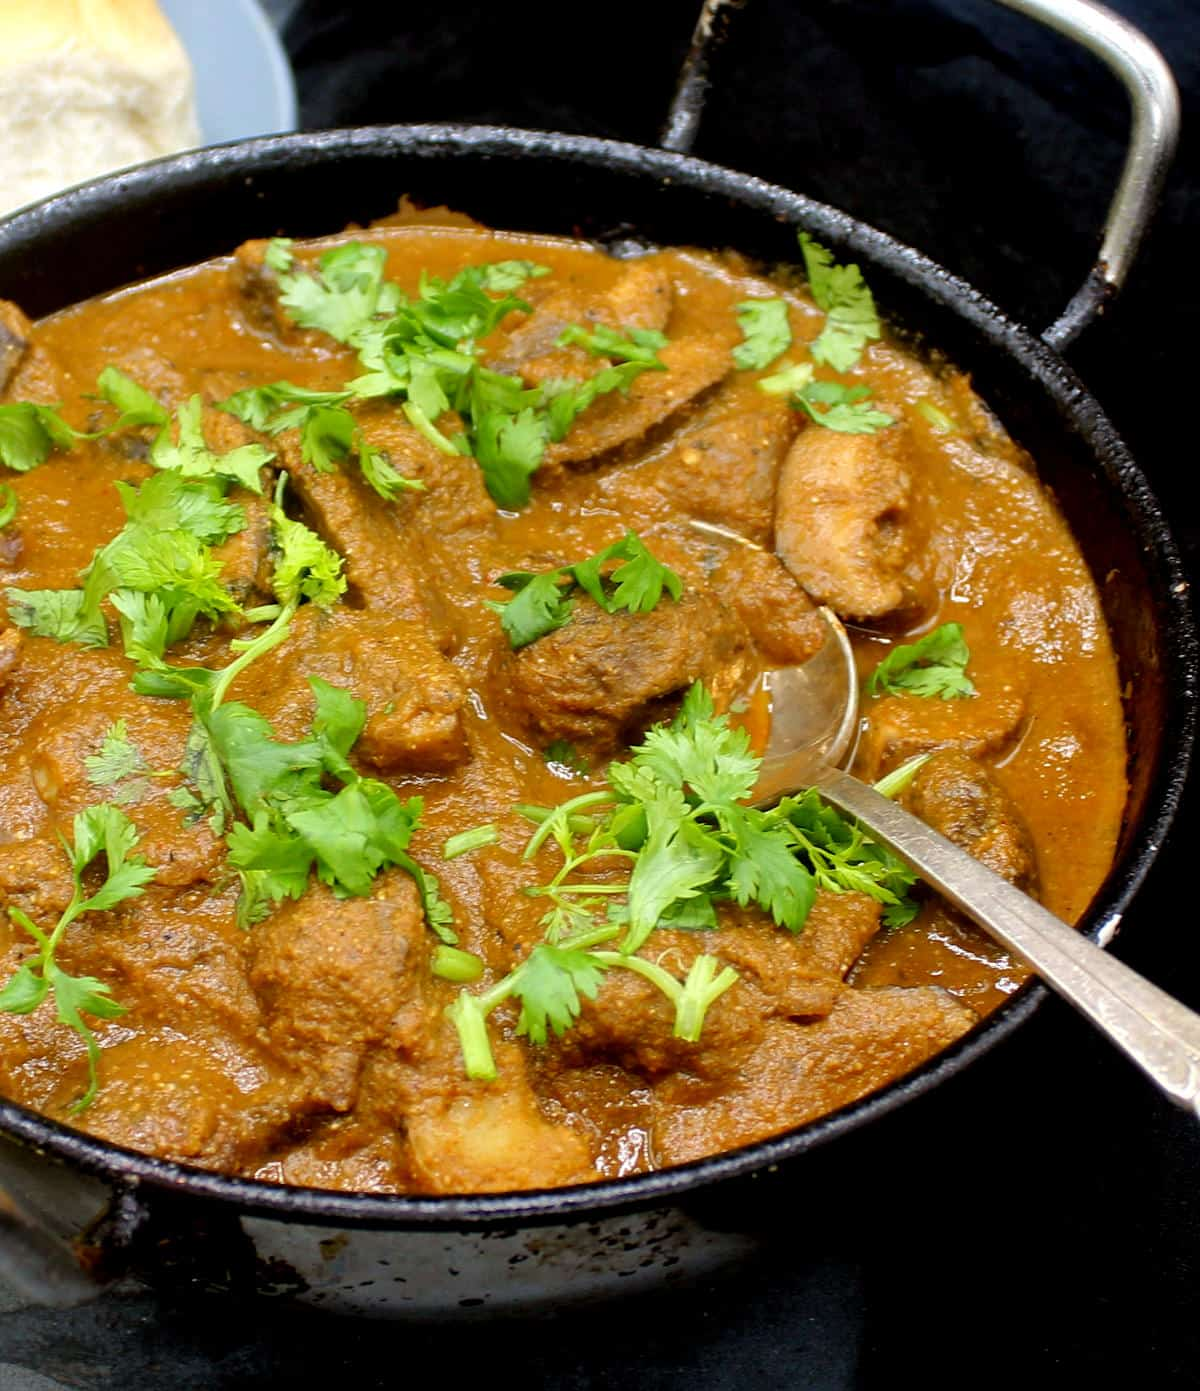 Closeup photo of my dad's not mutton mushroom curry in a karahi with cilantro garnish, mushrooms, potatoes and a spoon.